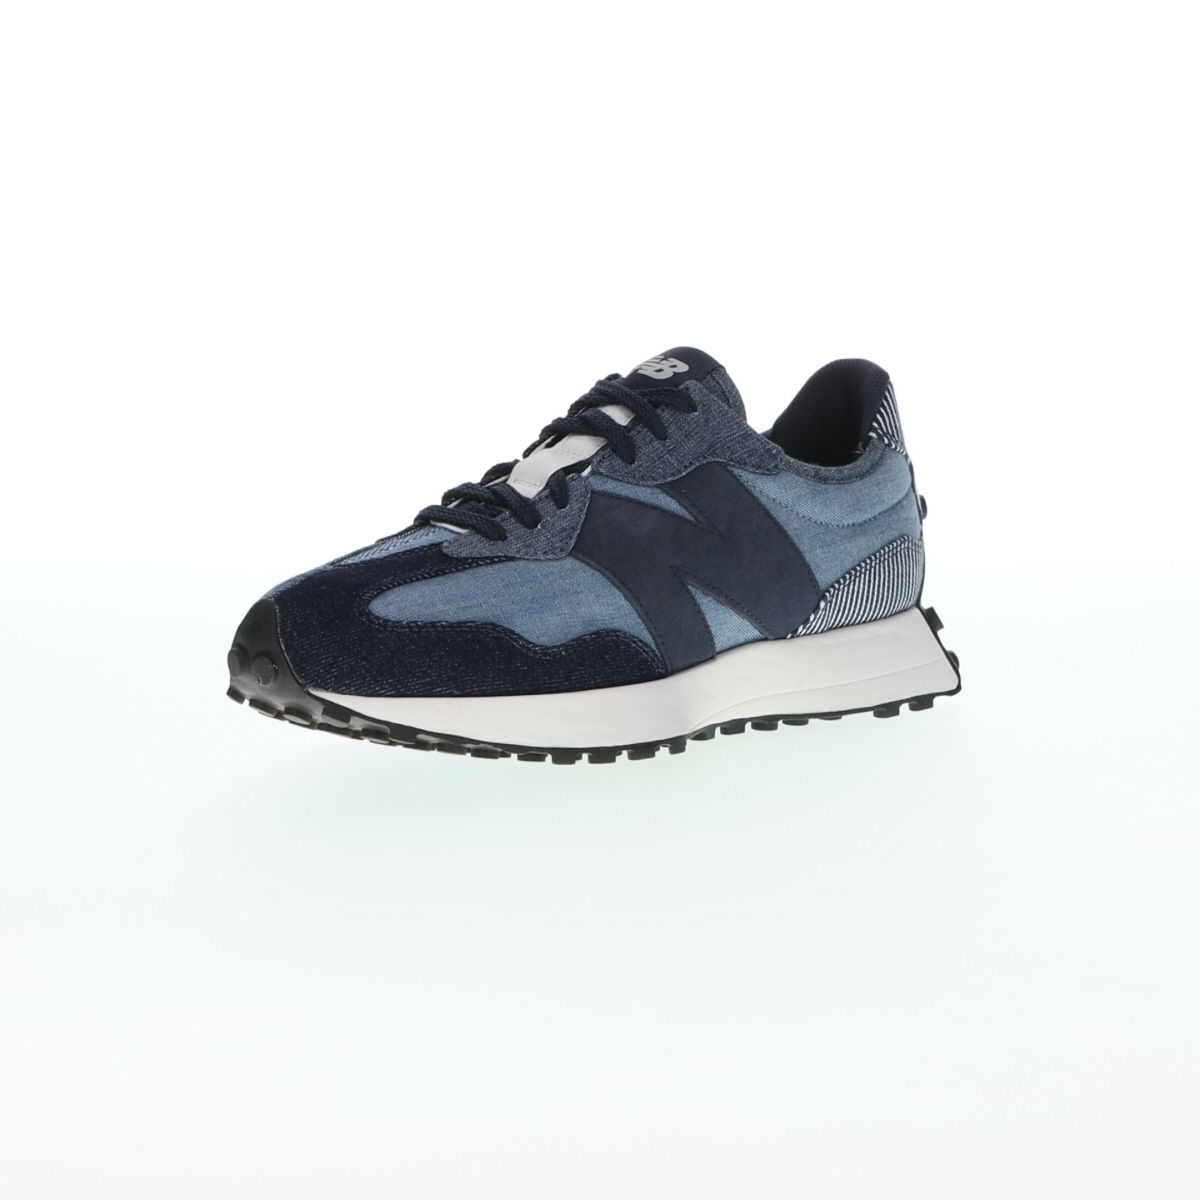 miteam adidas website women shoes store coupon